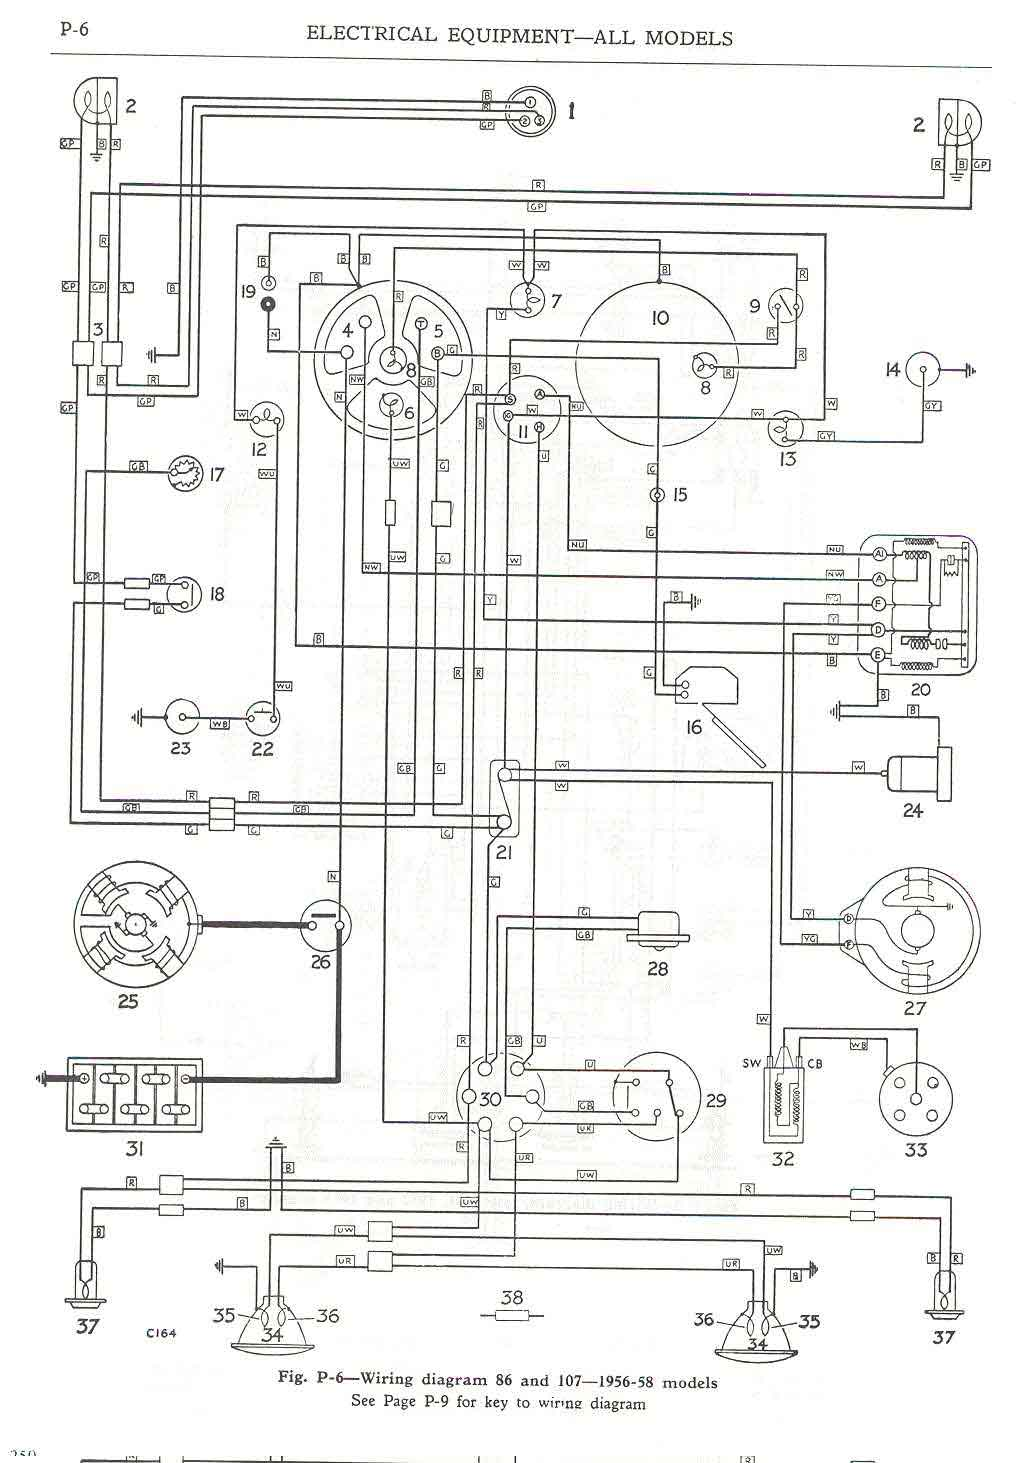 land rover discovery 1 wiring diagram ge diagrams faq - repair & maintenance series electrical reference si